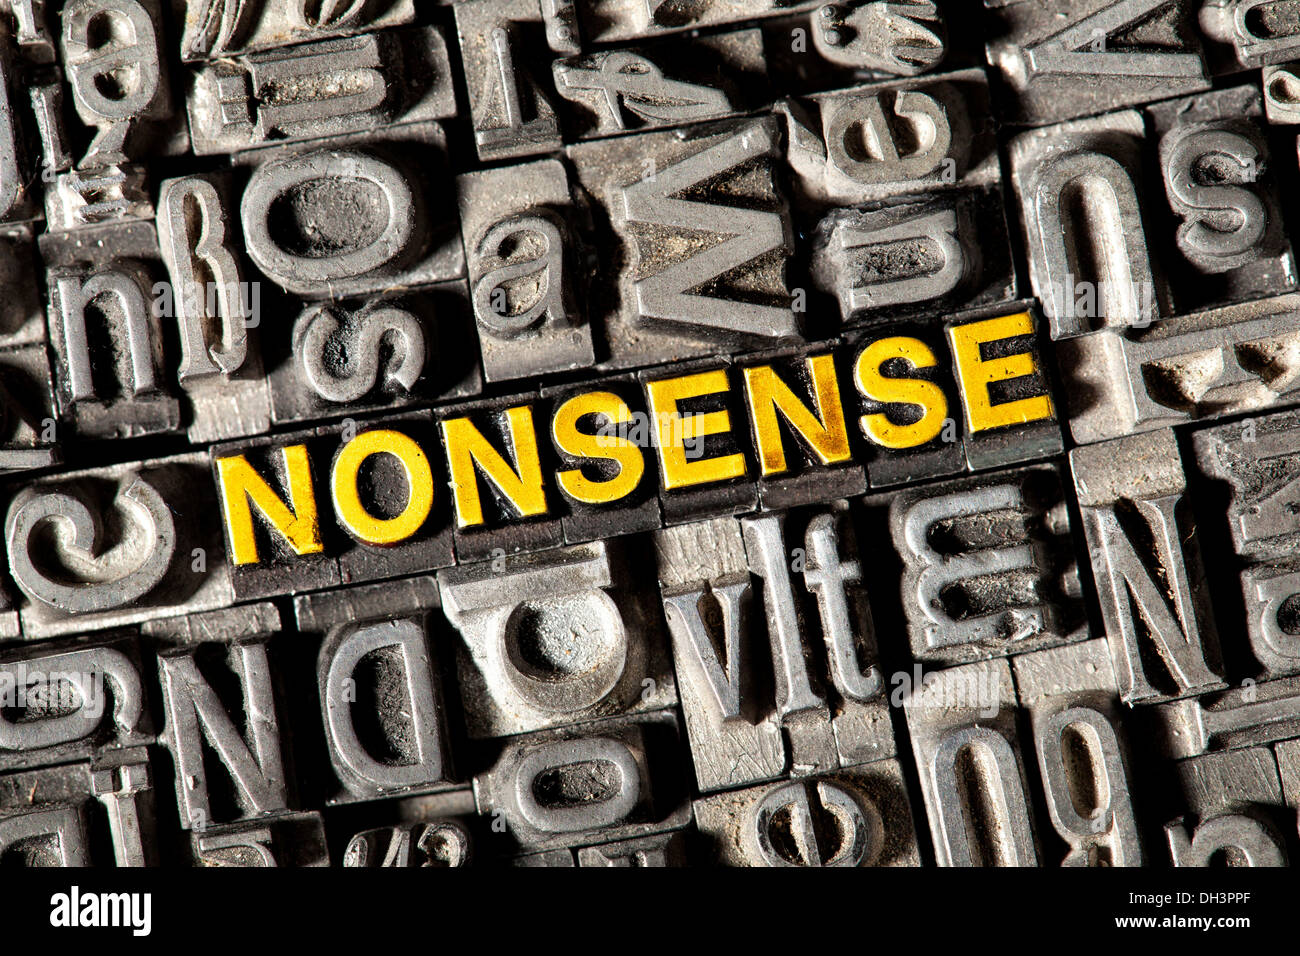 Old lead letters forming the word NONSENSE - Stock Image